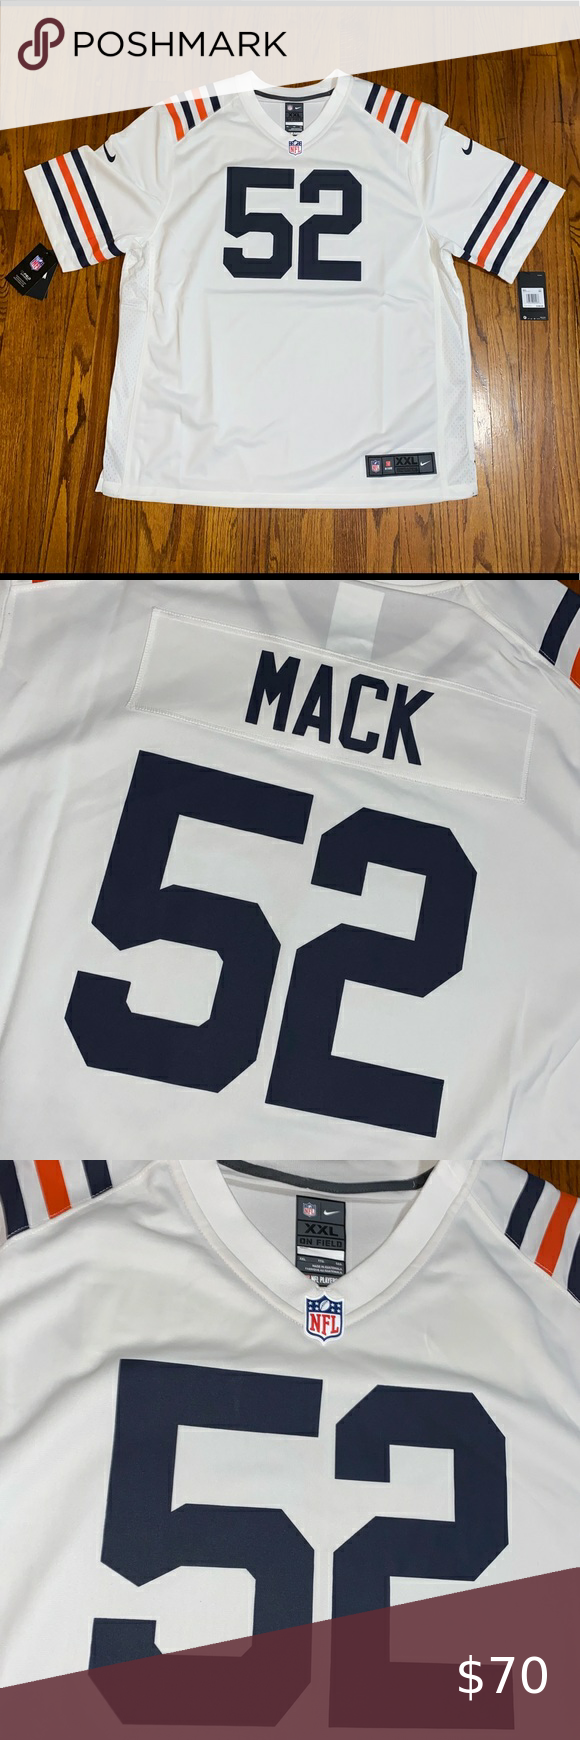 Chicago Bears Khalil Mack Jersey Chicago Bears Khalil Mack Nike Vapor Untouchable Limited Throwback Jersey Brand New With Tags Retai In 2020 Mack Jersey Nike Shirts